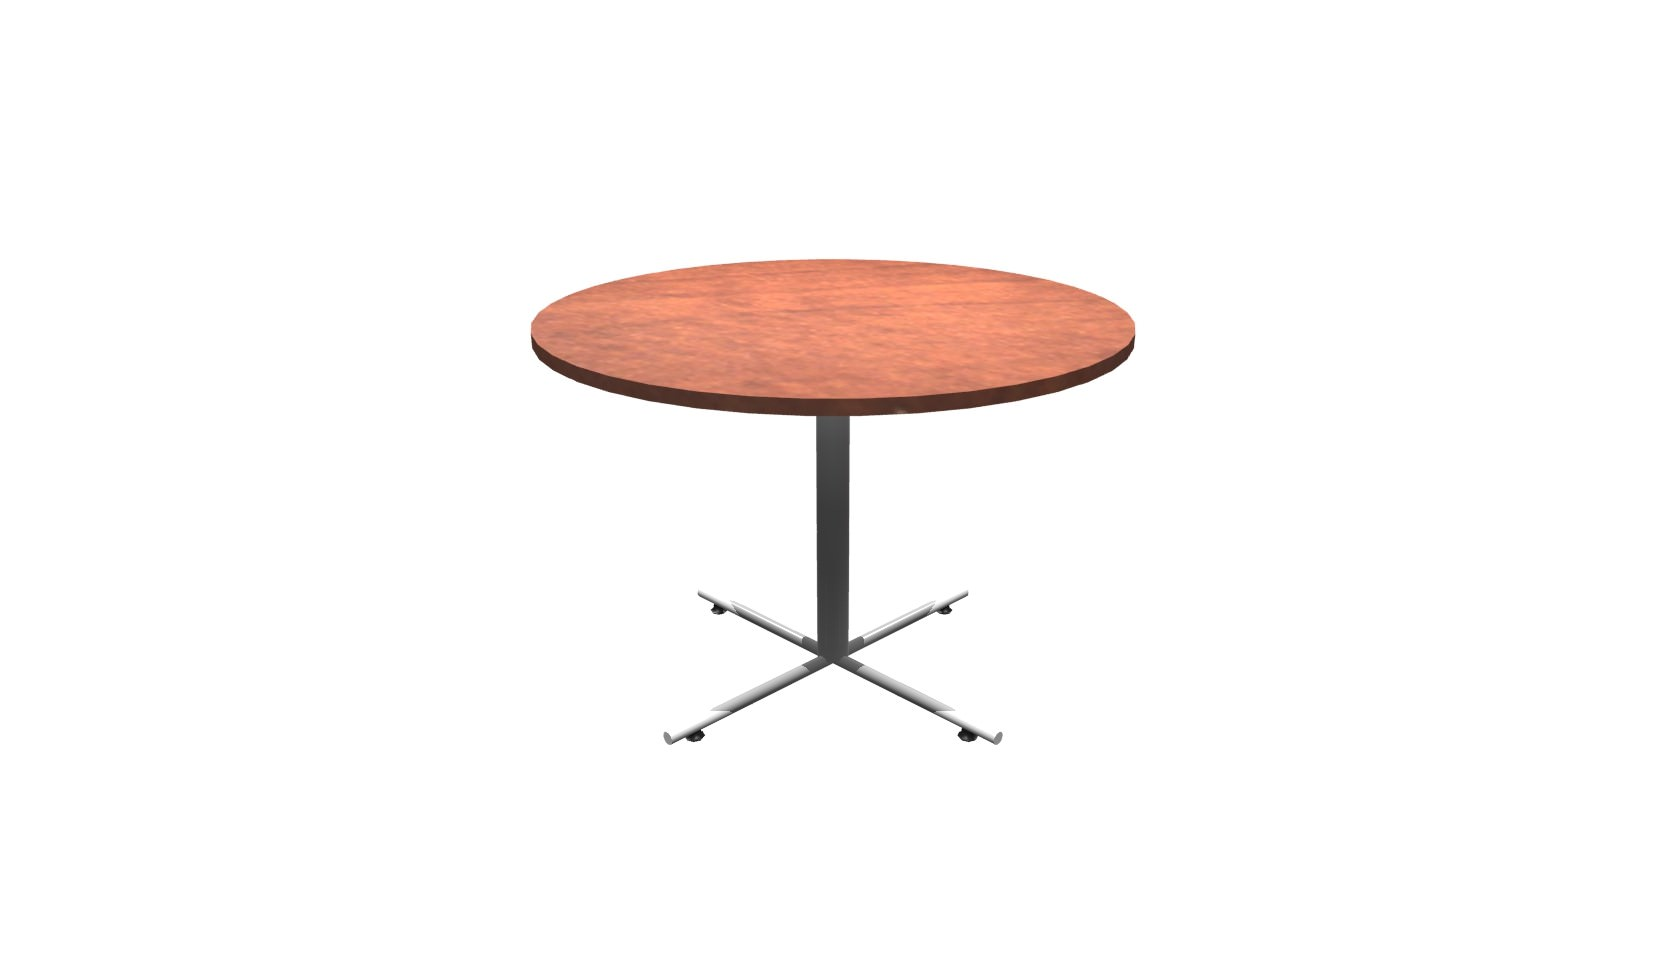 Inch Round Conference Table Cherry Chrome - 42 inch round conference table